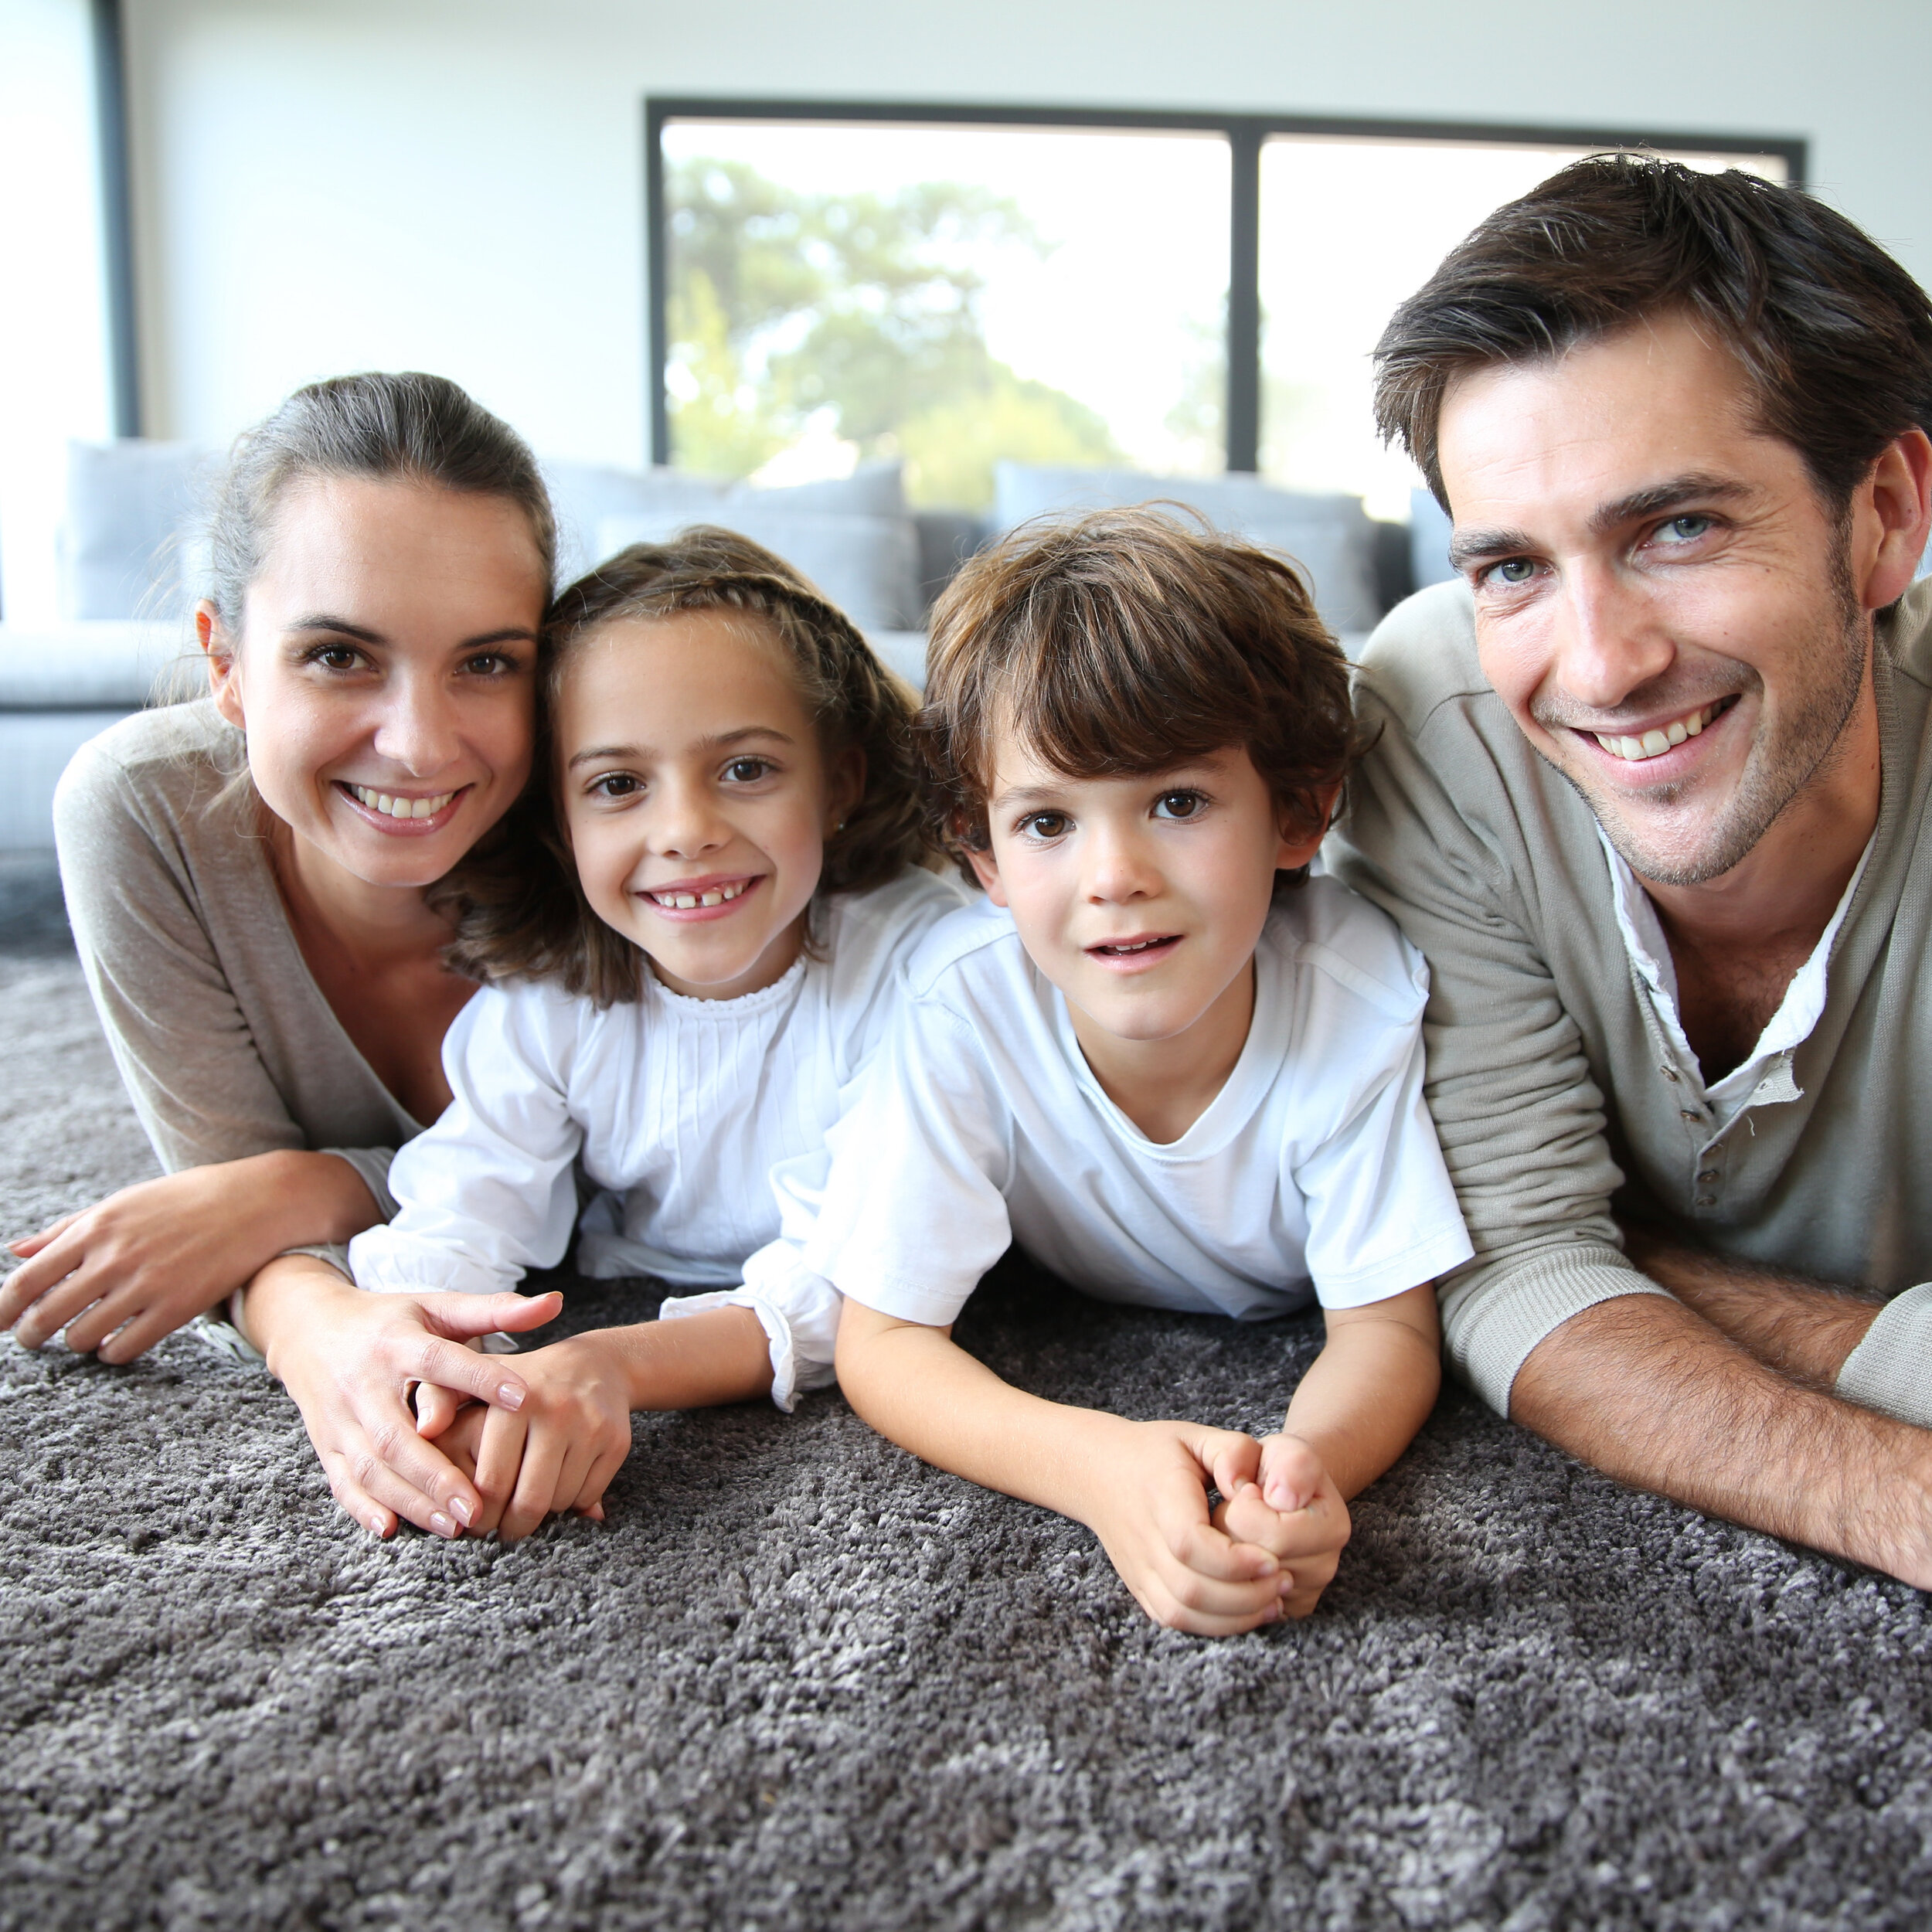 Family at home relaxing on carpet square.jpg